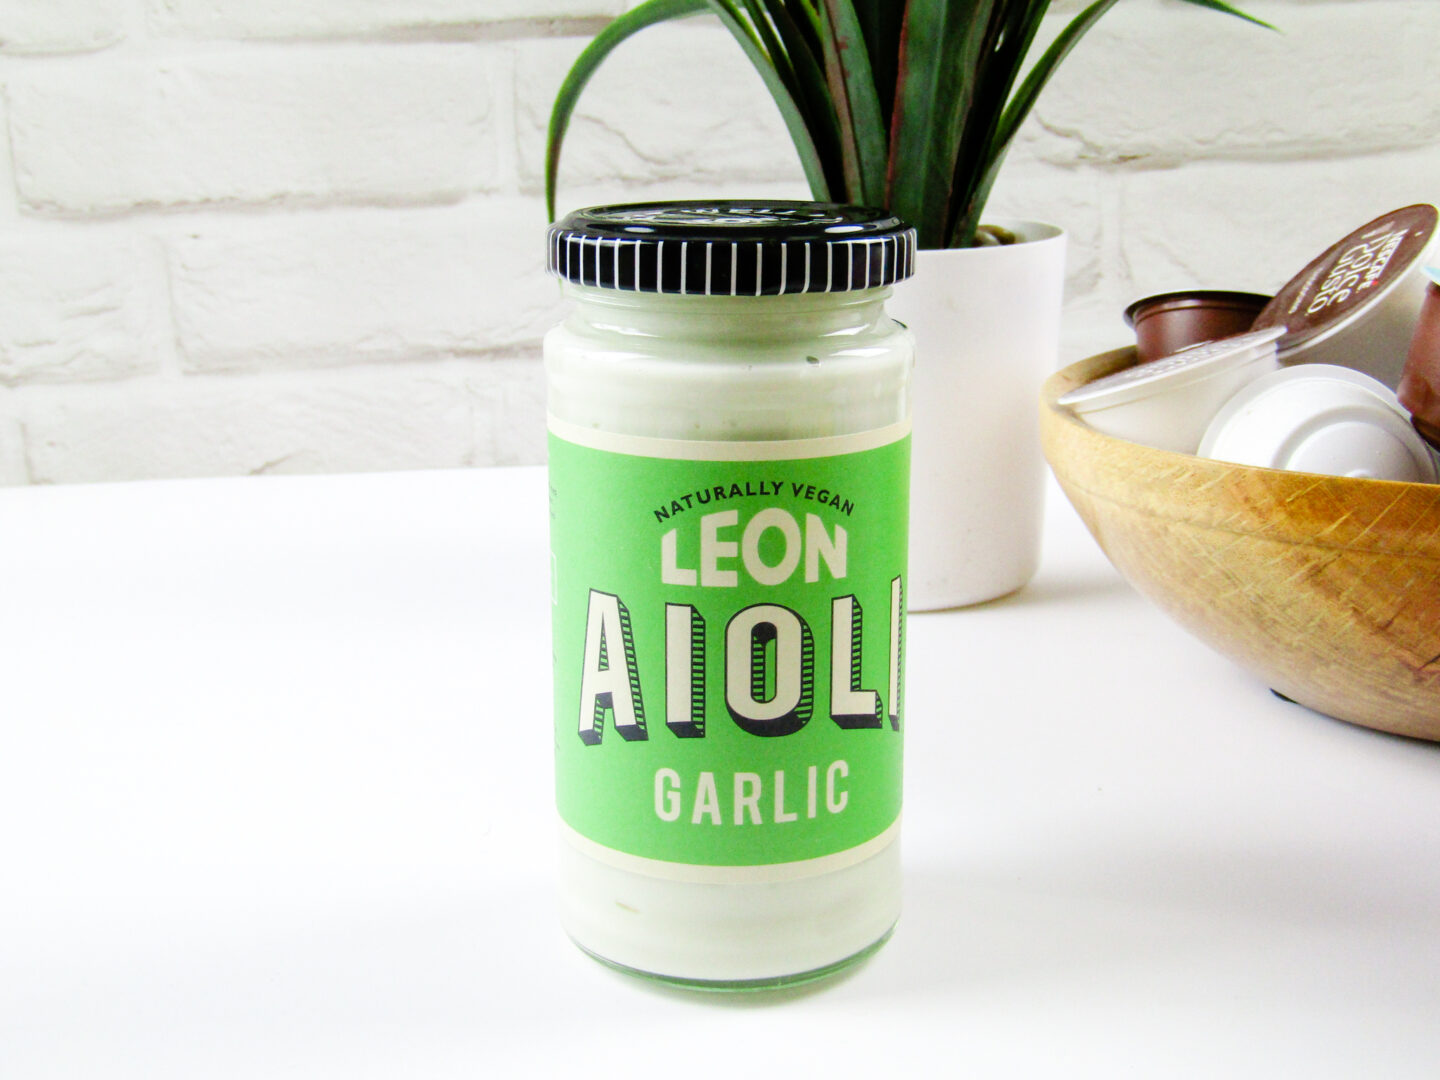 LEON Aioli - Degusta Box December 2020 – What's In the Box?